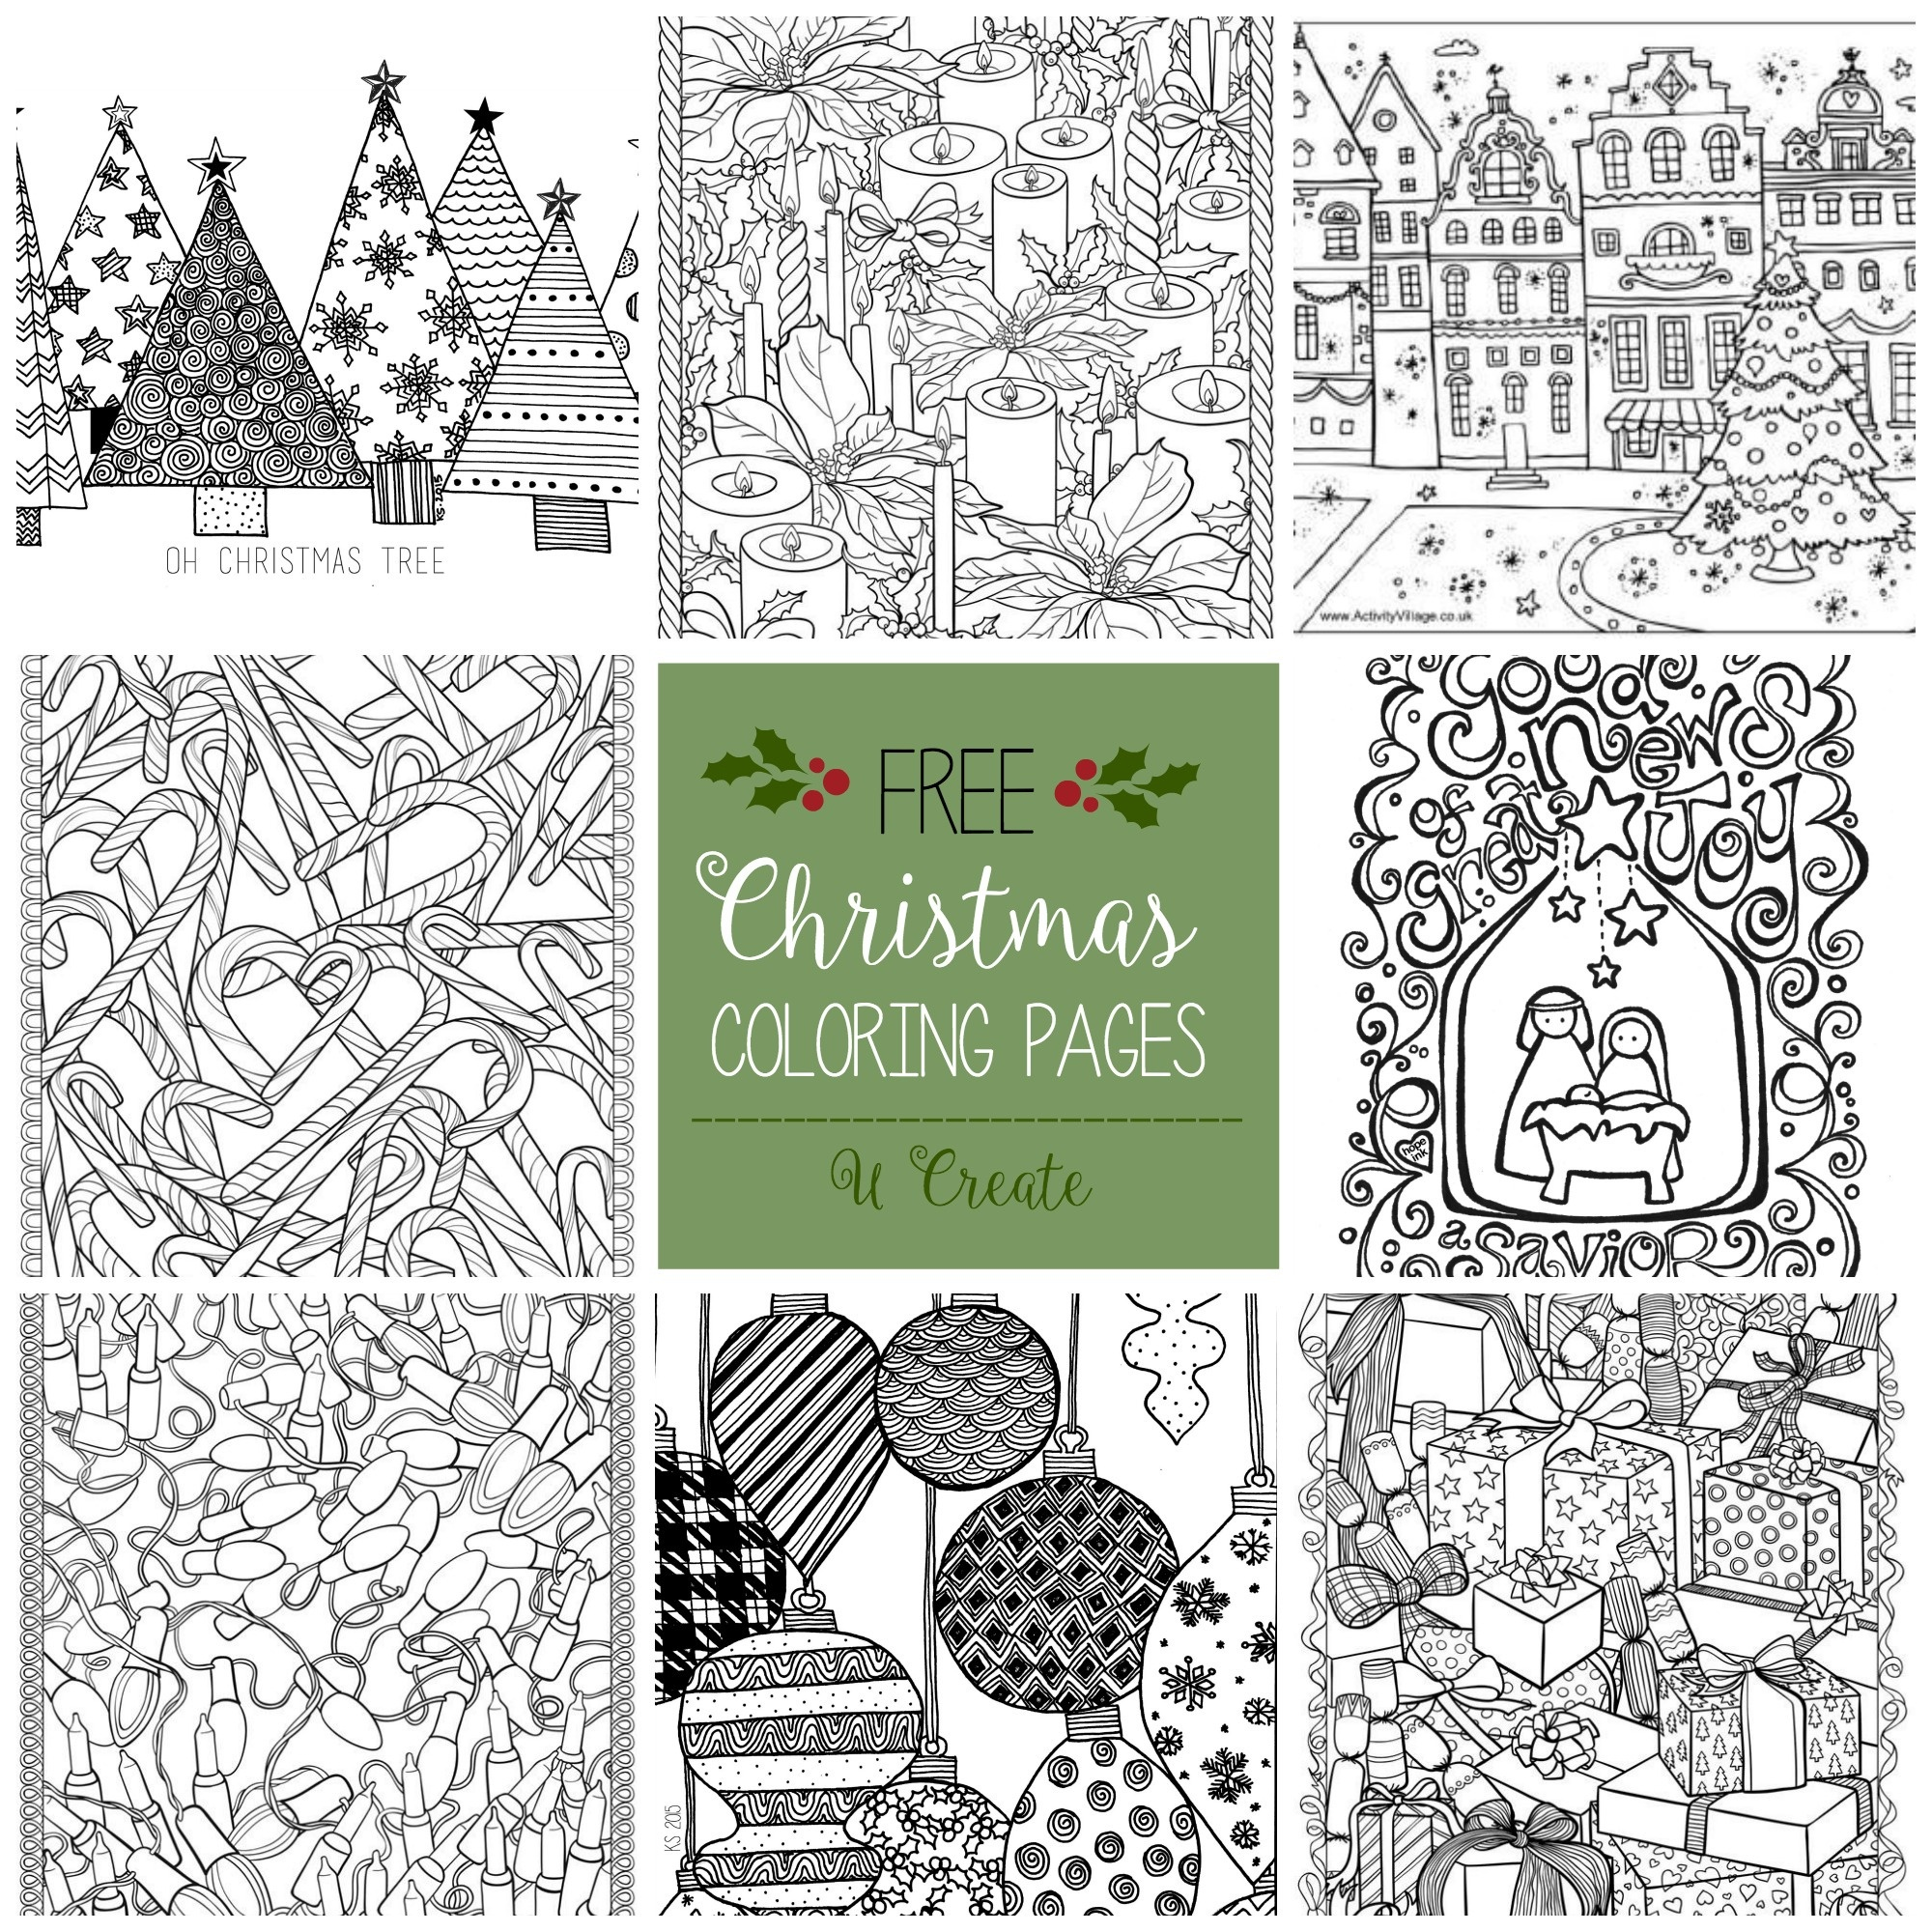 Free Christmas Adult Coloring Pages - U Create - Free Printable Coloring Cards For Adults